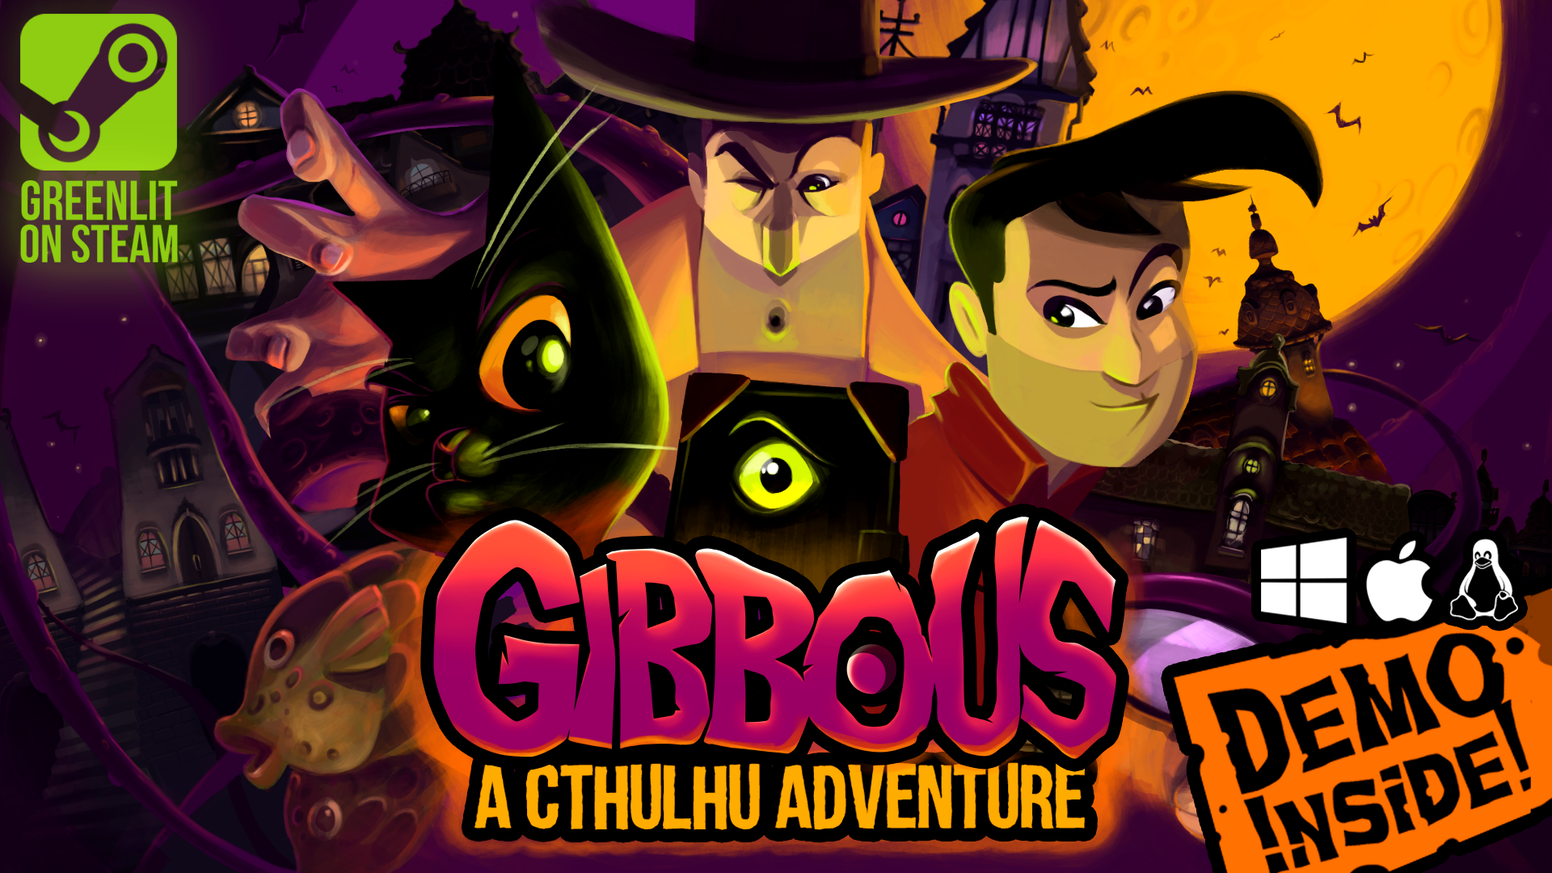 Crazy cultists. Cthulhu. A talking cat. Play as trhee protagonists and explore a lushly rendered Lovecraftian world. A comedy cosmic horror adventure made in Transylvania!